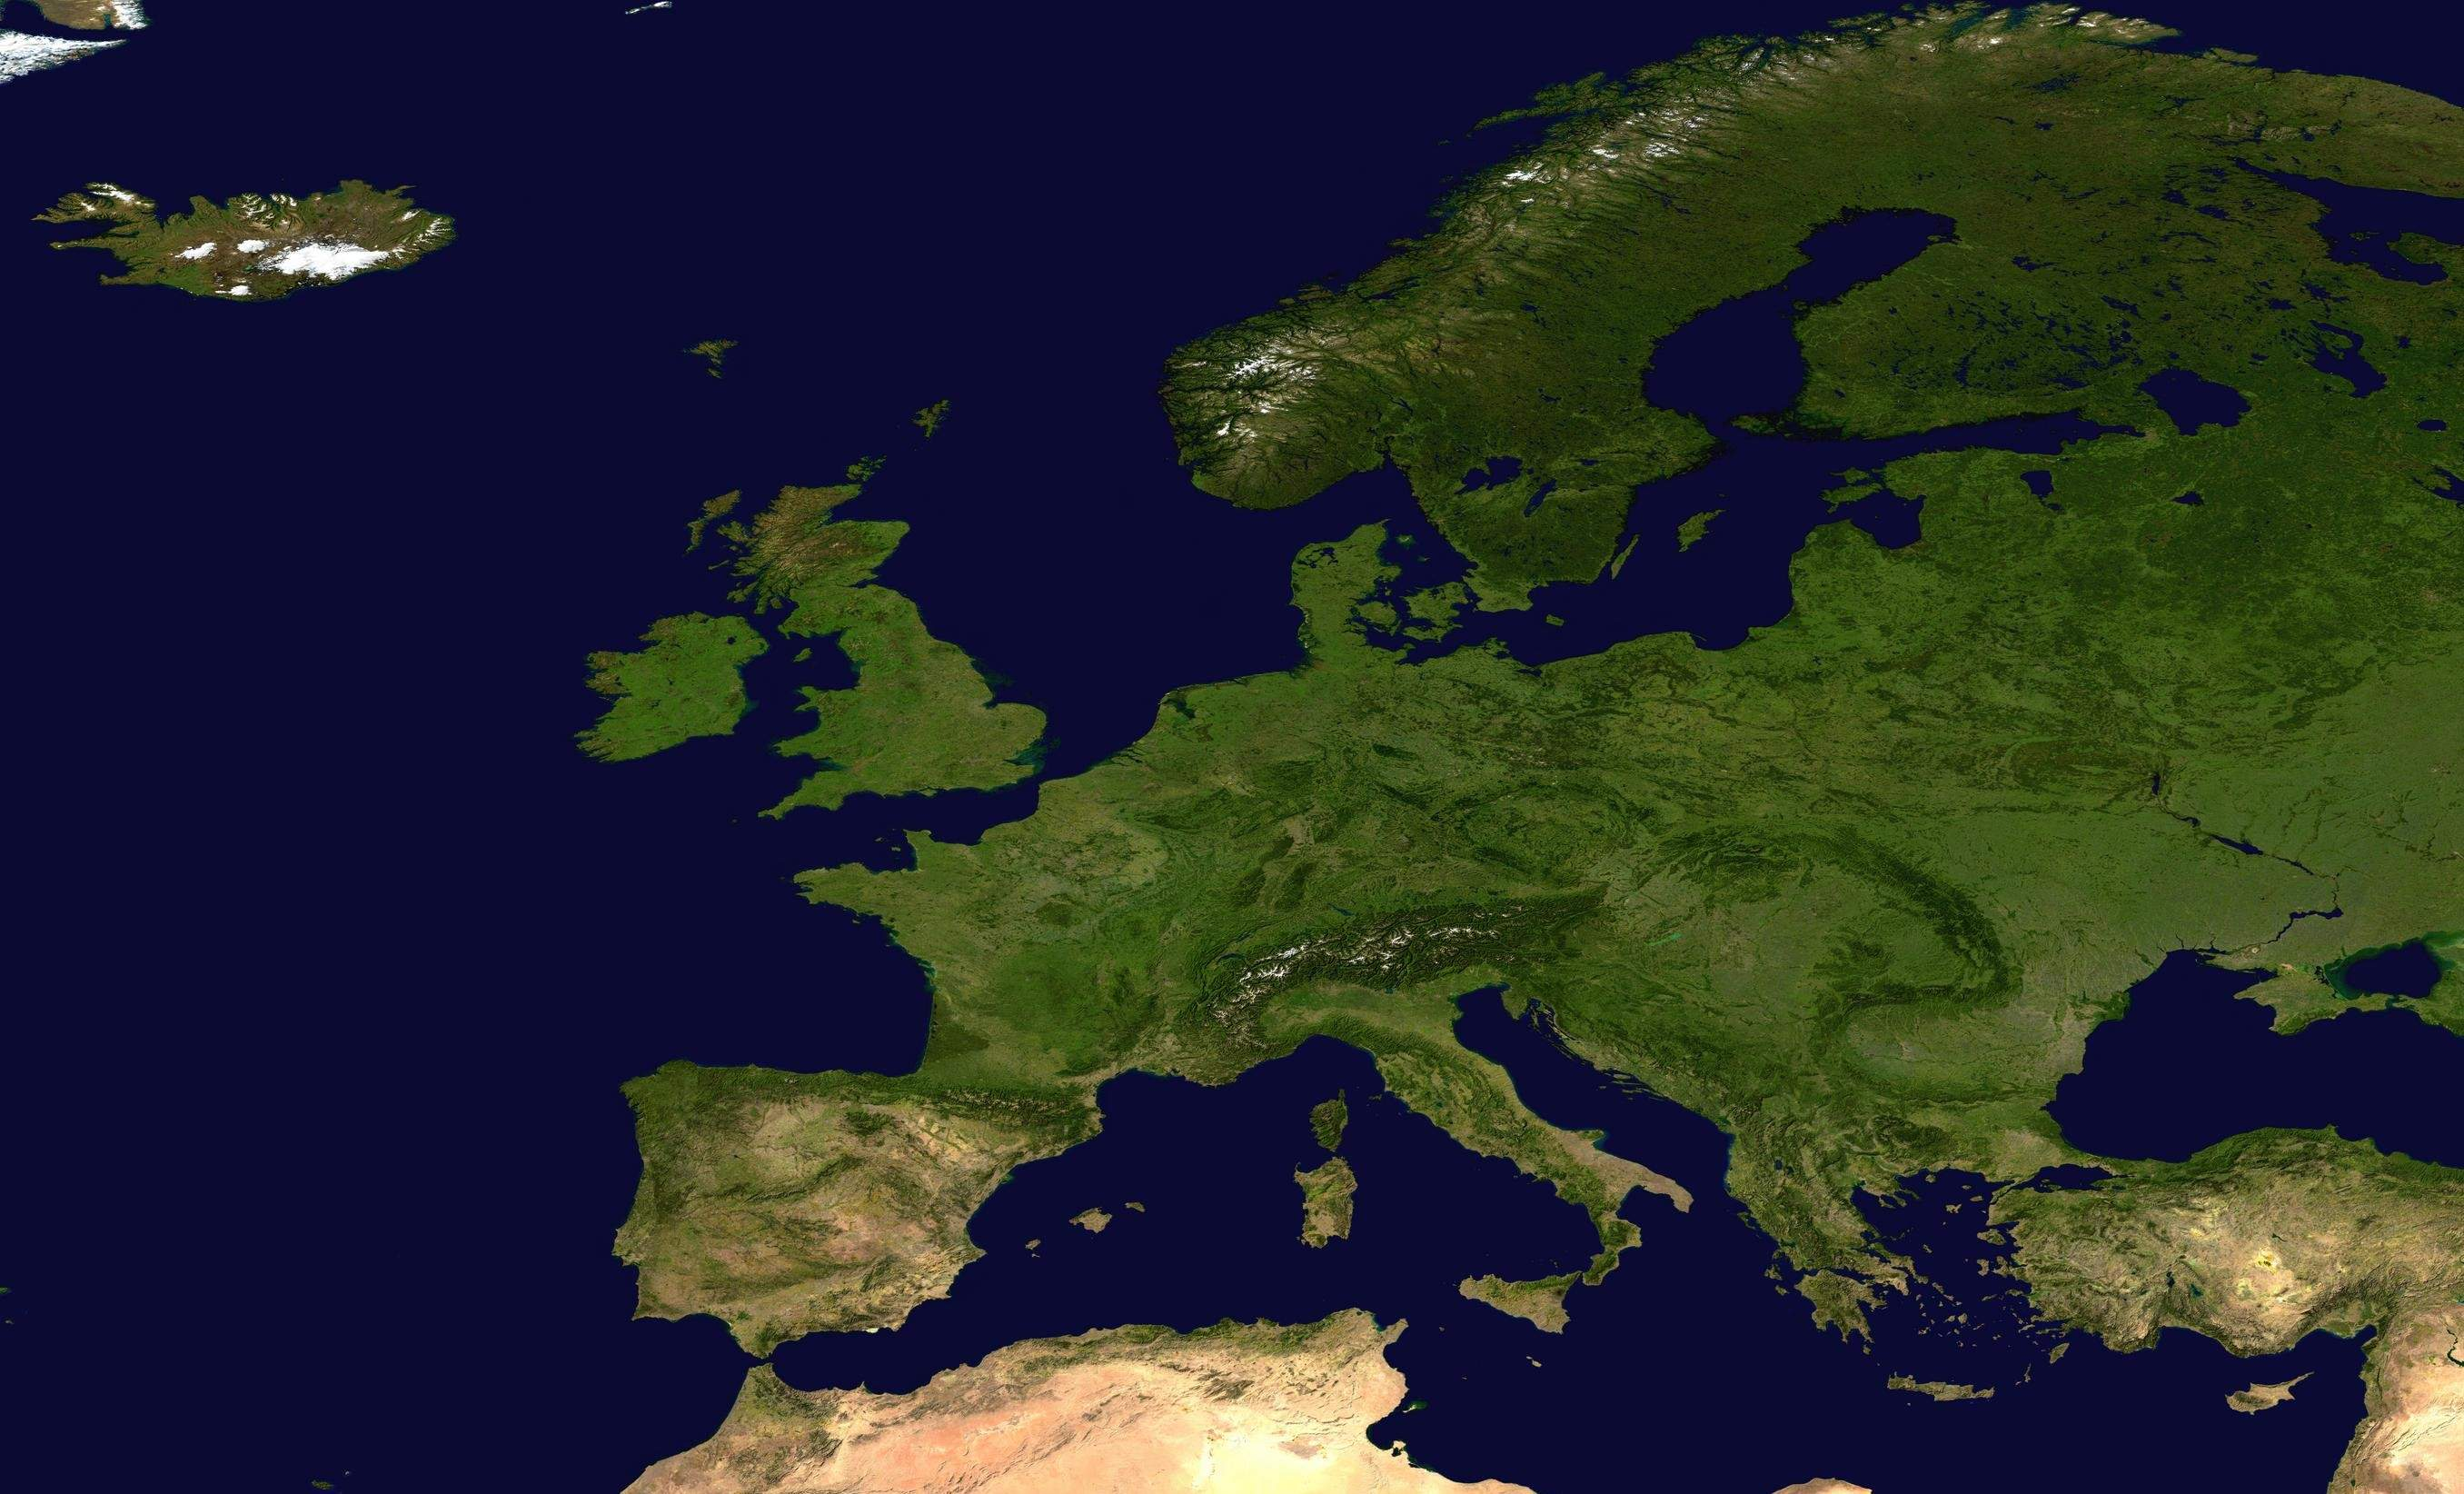 Europe Nasa Satellite Mapsof Net